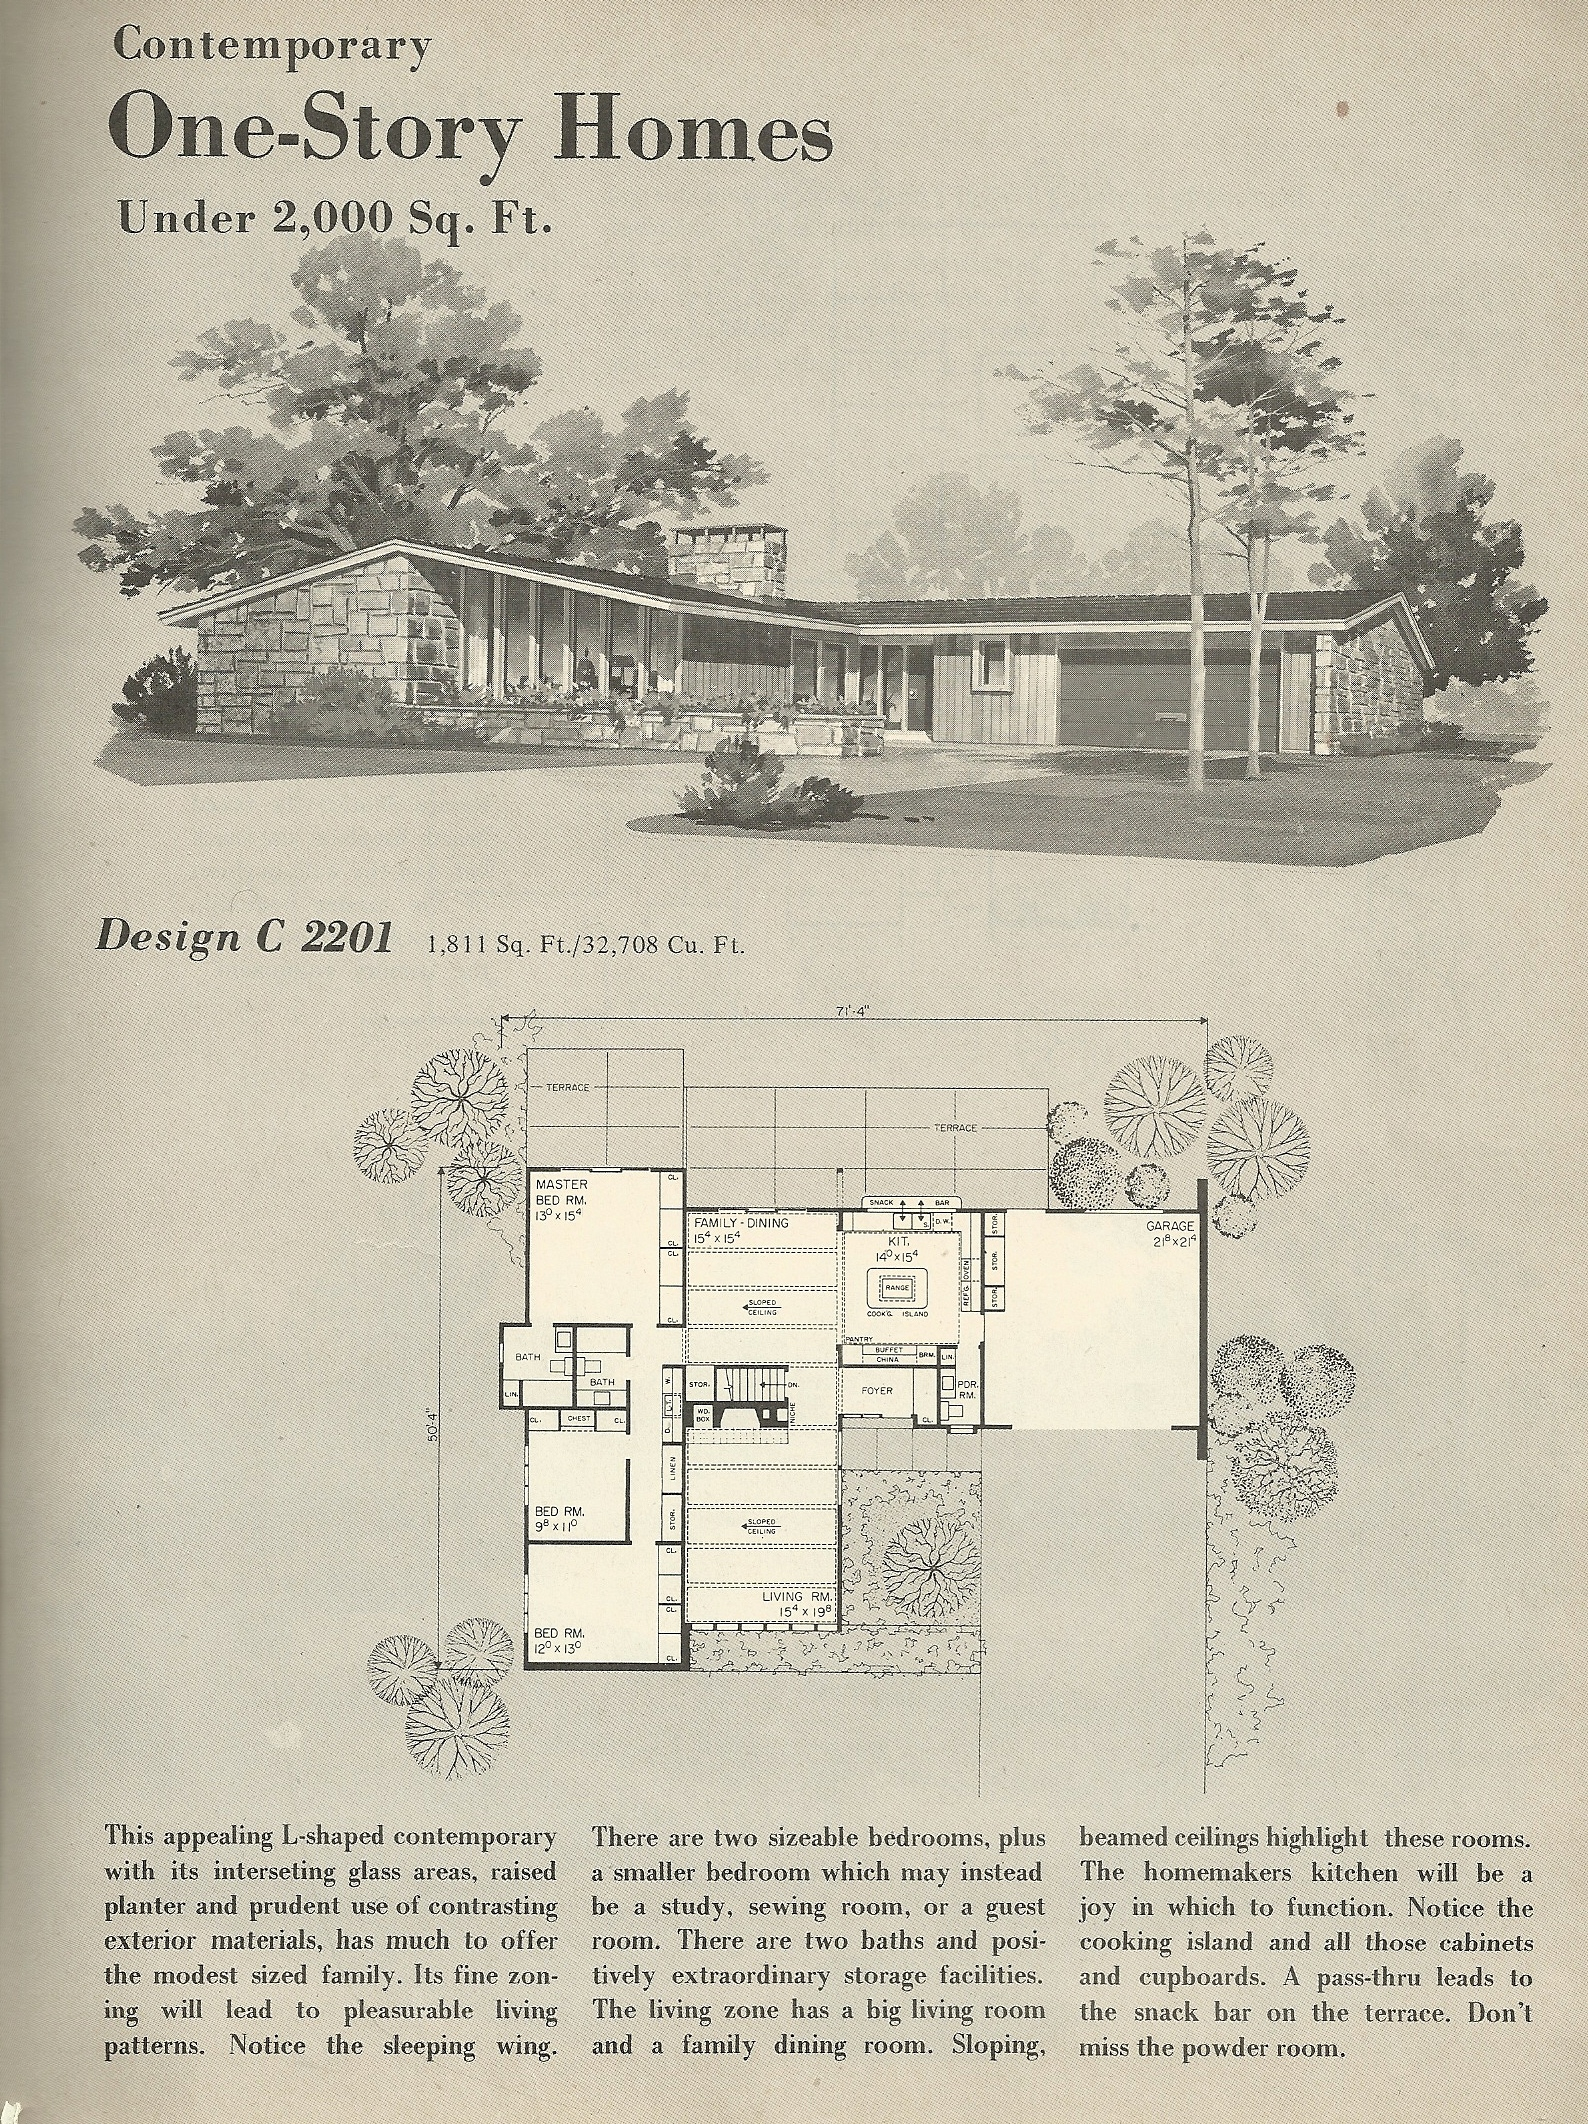 Vintage house plans 2201 antique alter ego for Vintage home plans